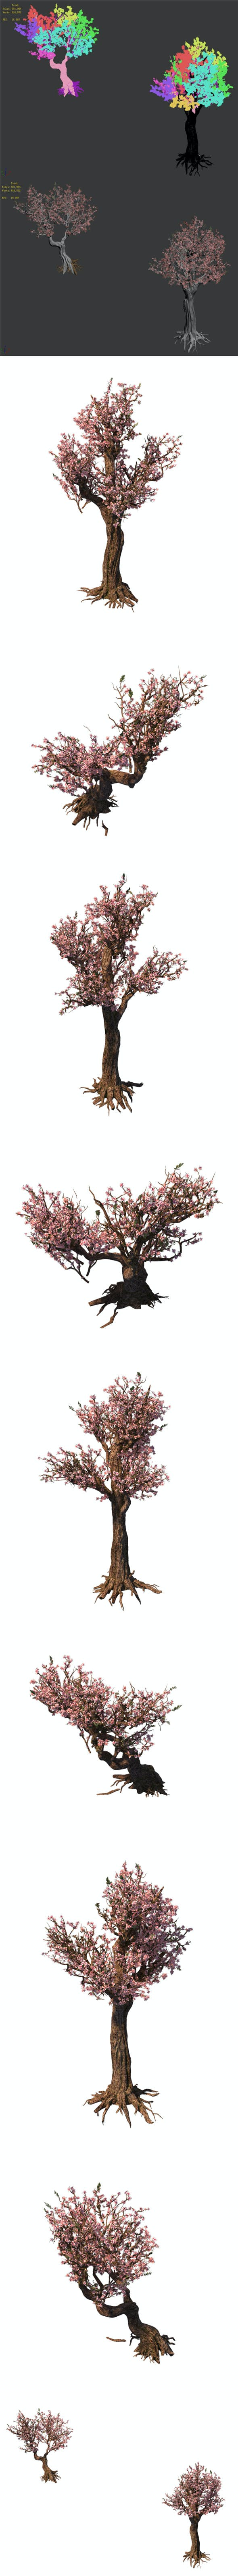 Tree - wonderful fantasy - peach tree 01 - 3DOcean Item for Sale